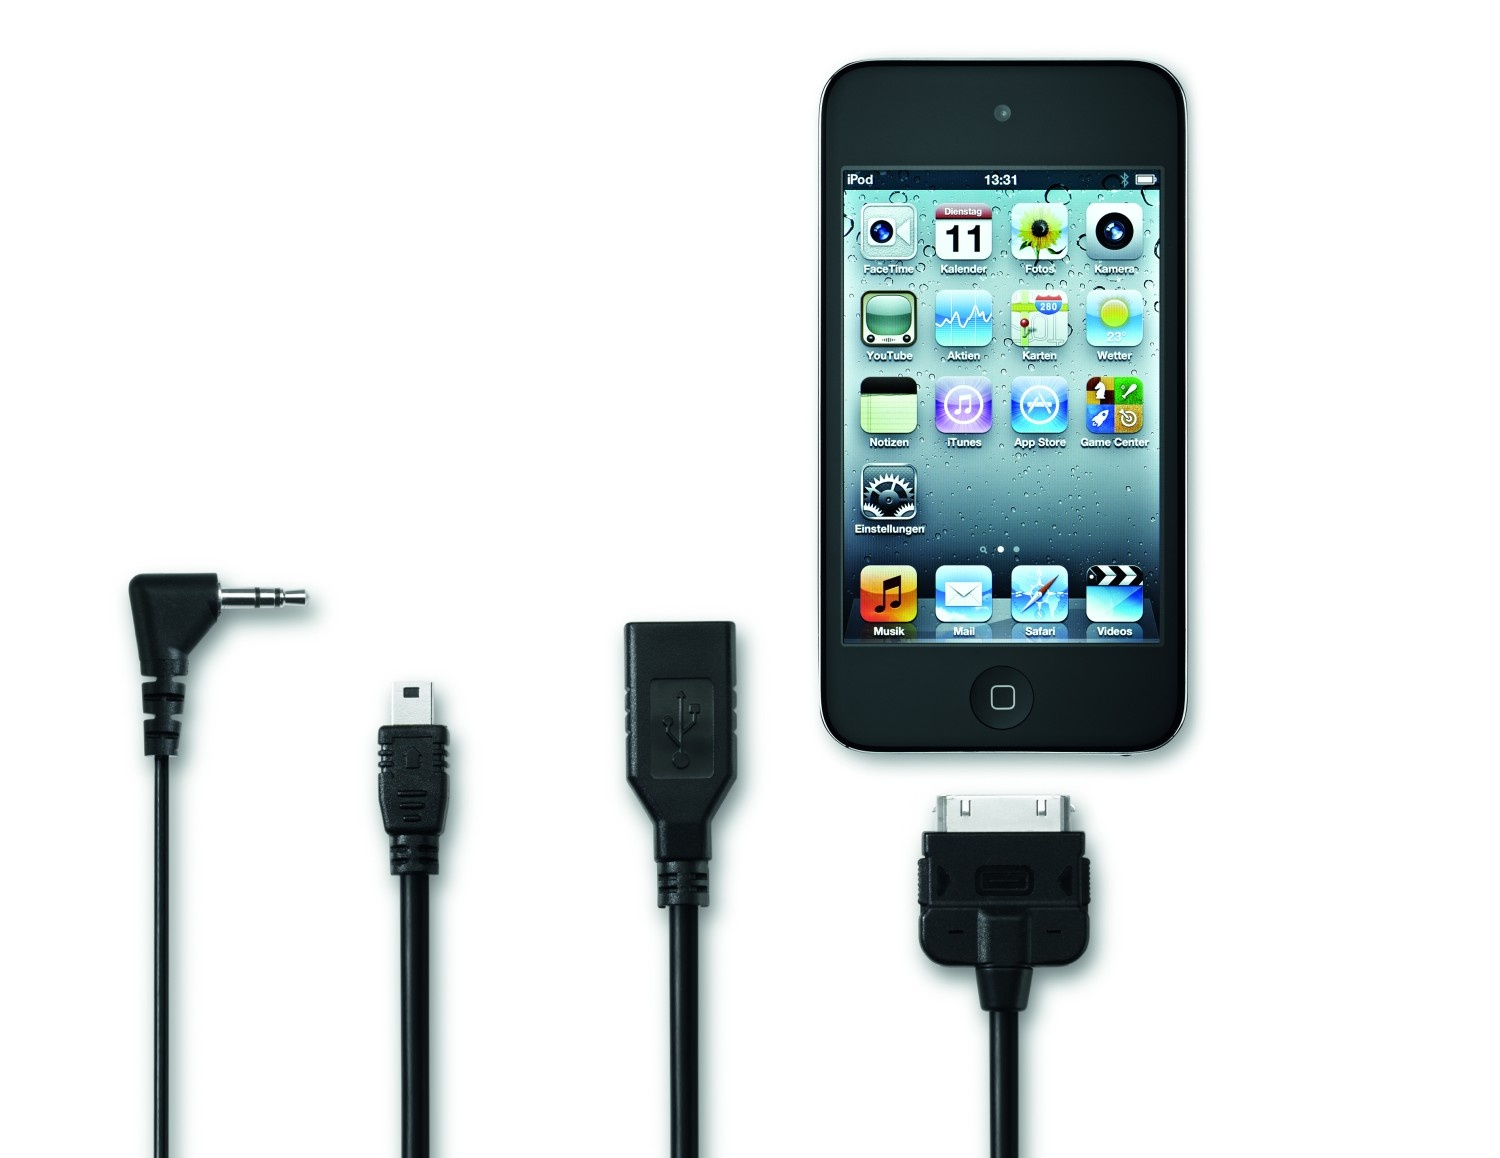 Adaptador para enchufe multimedia Media-In iPod, versión alargada 25 cm - Ítem - 1